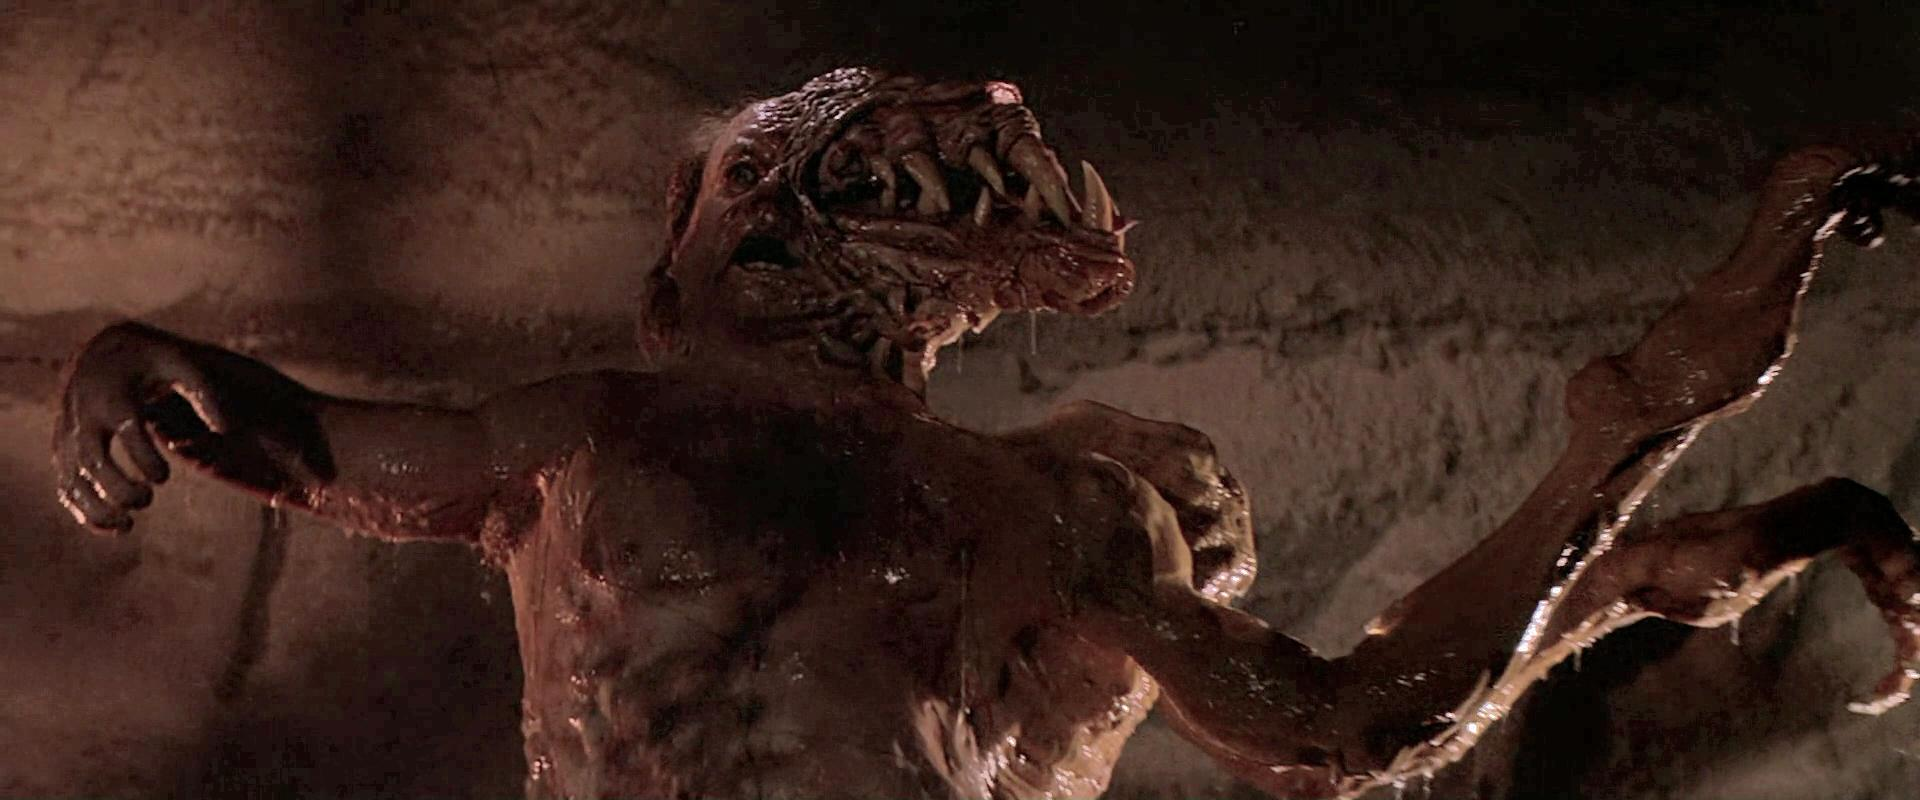 eli_roth_history_of_horror_creatures_2_kep